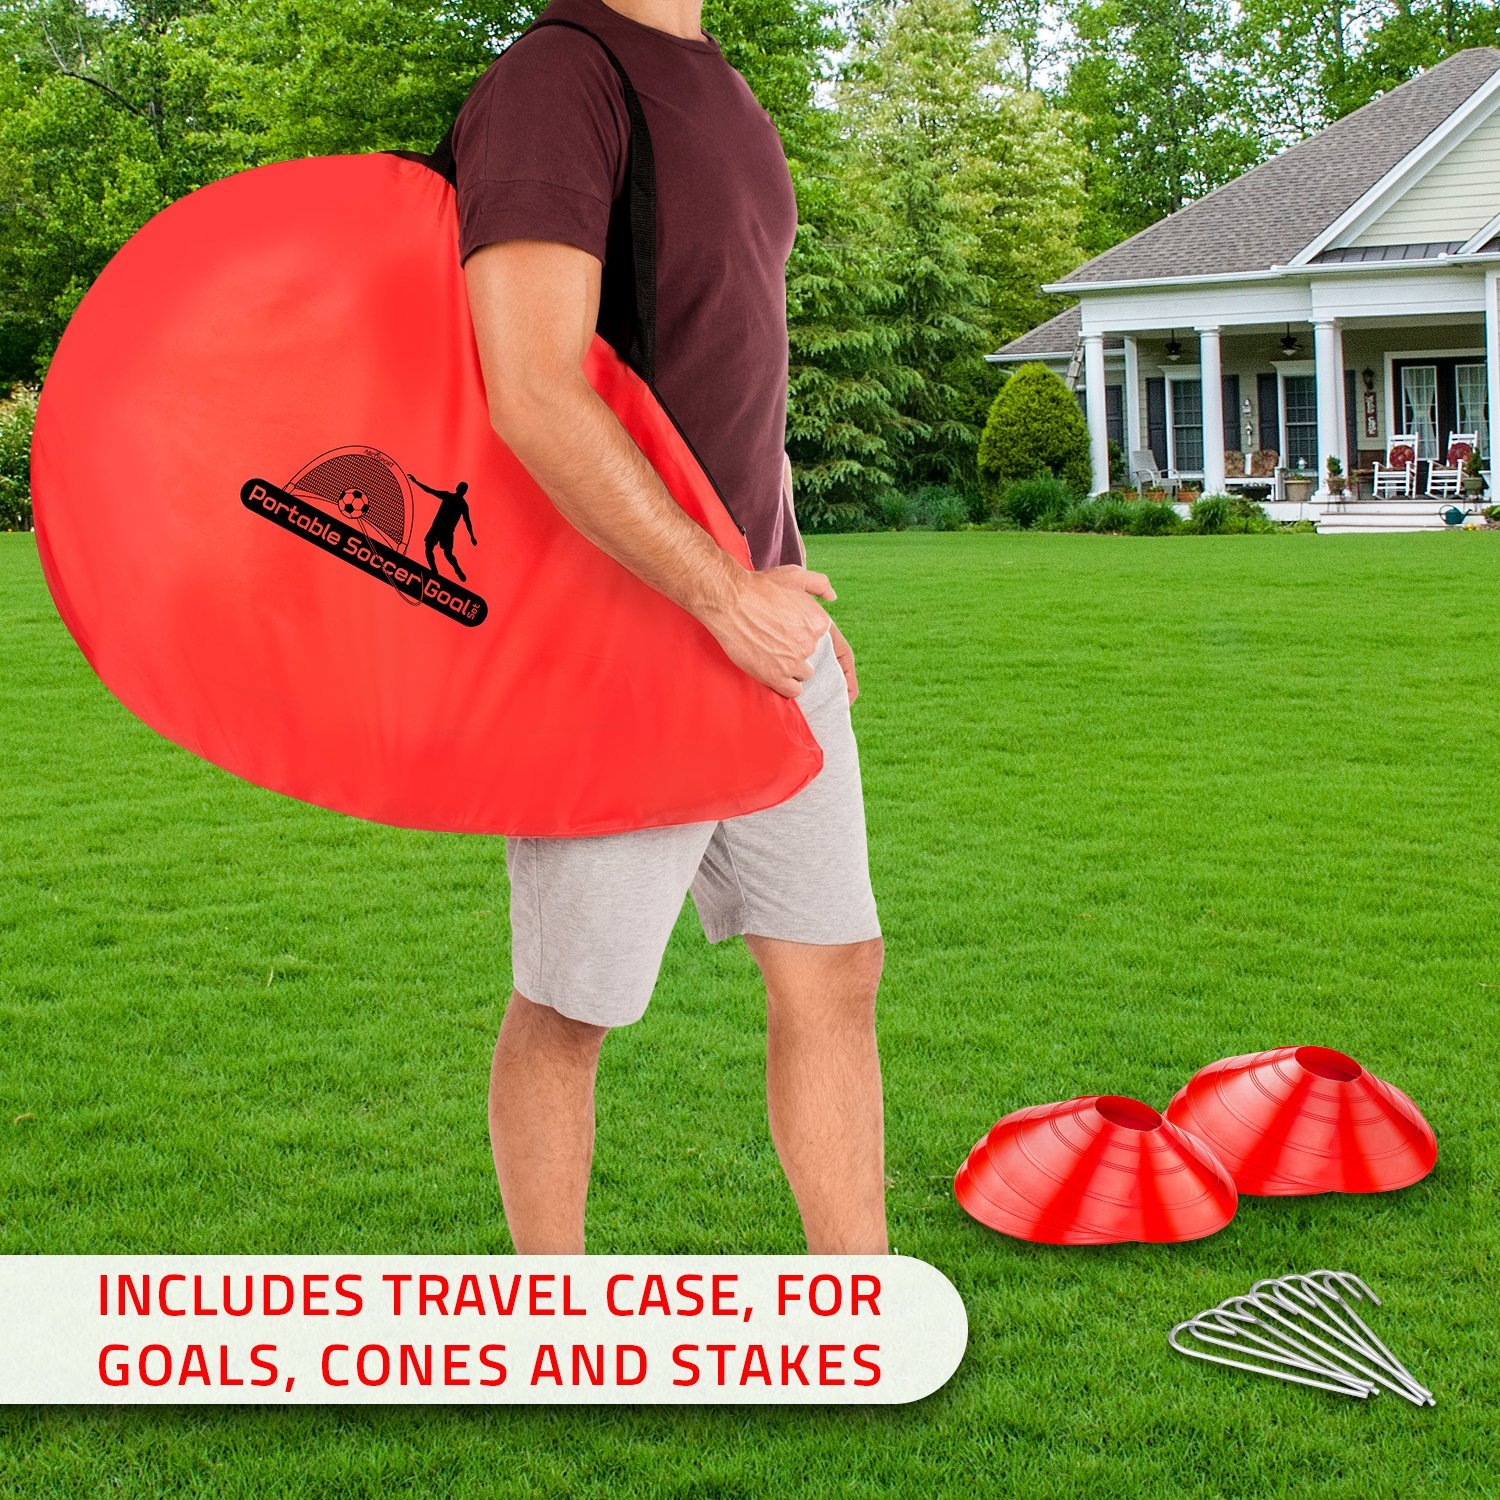 Abco Tech Portable Soccer Goal Set for Training, Practice & Game – Pop-up Soccer Net – 2 Soccer Goals, 6 Disc Cones & 8 Spikes – Carry Bag – Easy to Assemble & Store – Be it Backyard or Public Fields by Abco Tech (Image #2)